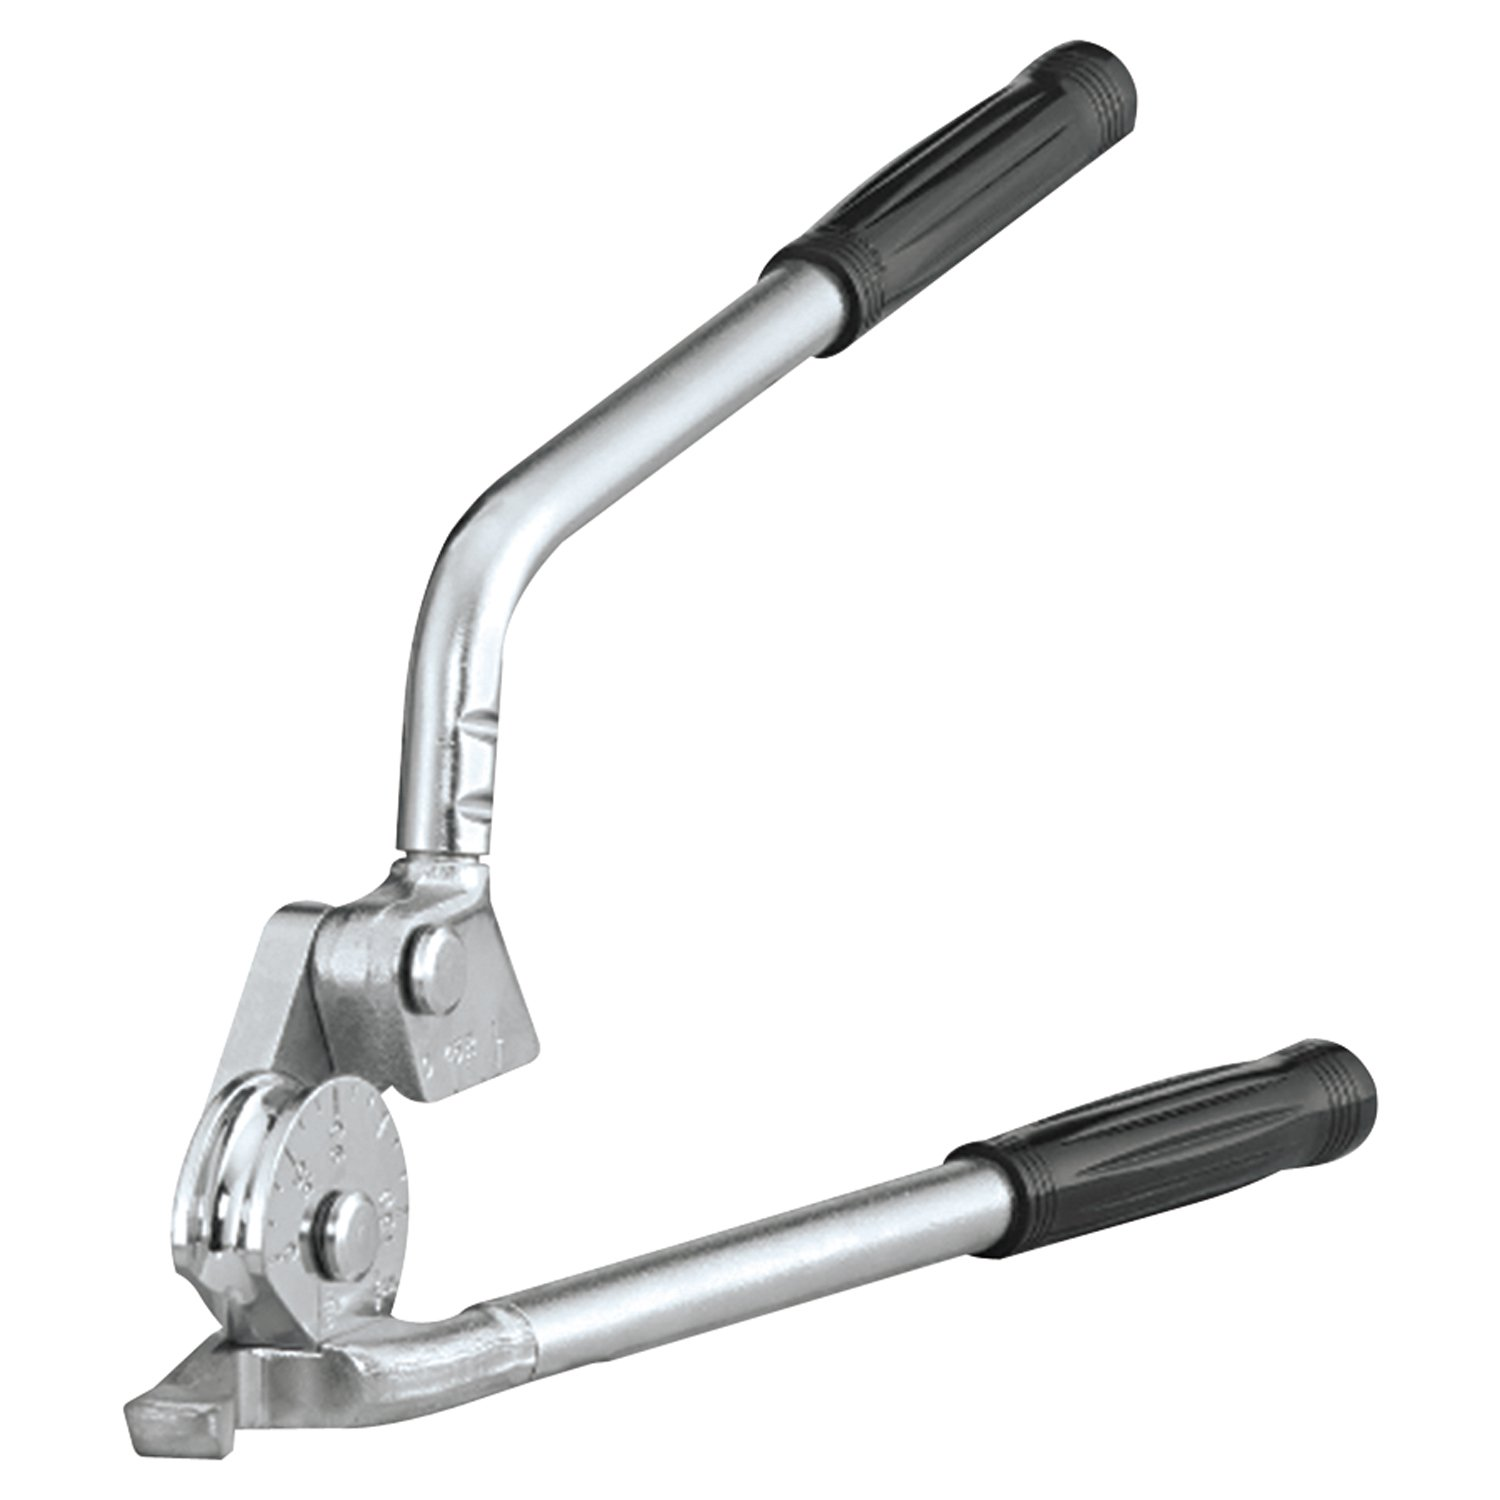 Imperial Stride Tool 364-FHB04 Swivel Handle Tube Benders with 1/4' O.D.